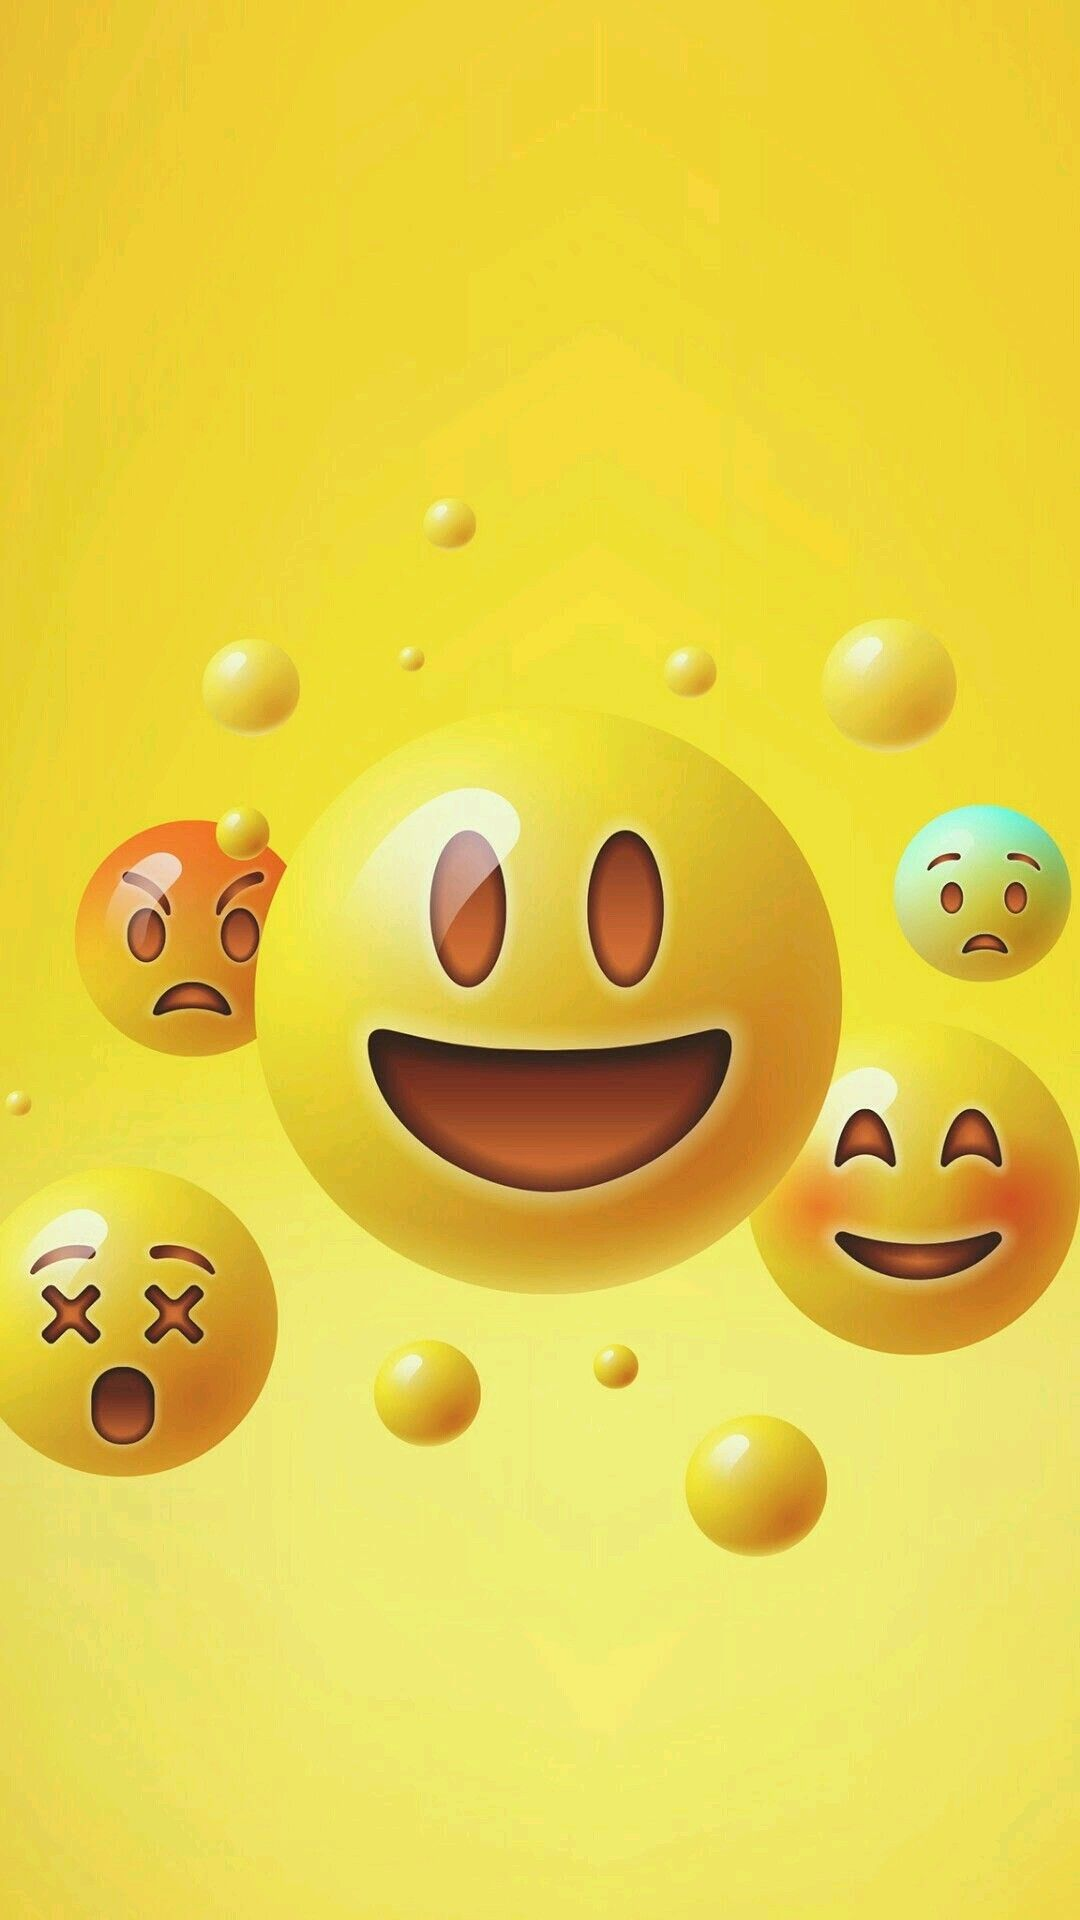 Pin by Samantha Keller on face Emoji wallpaper, Creative